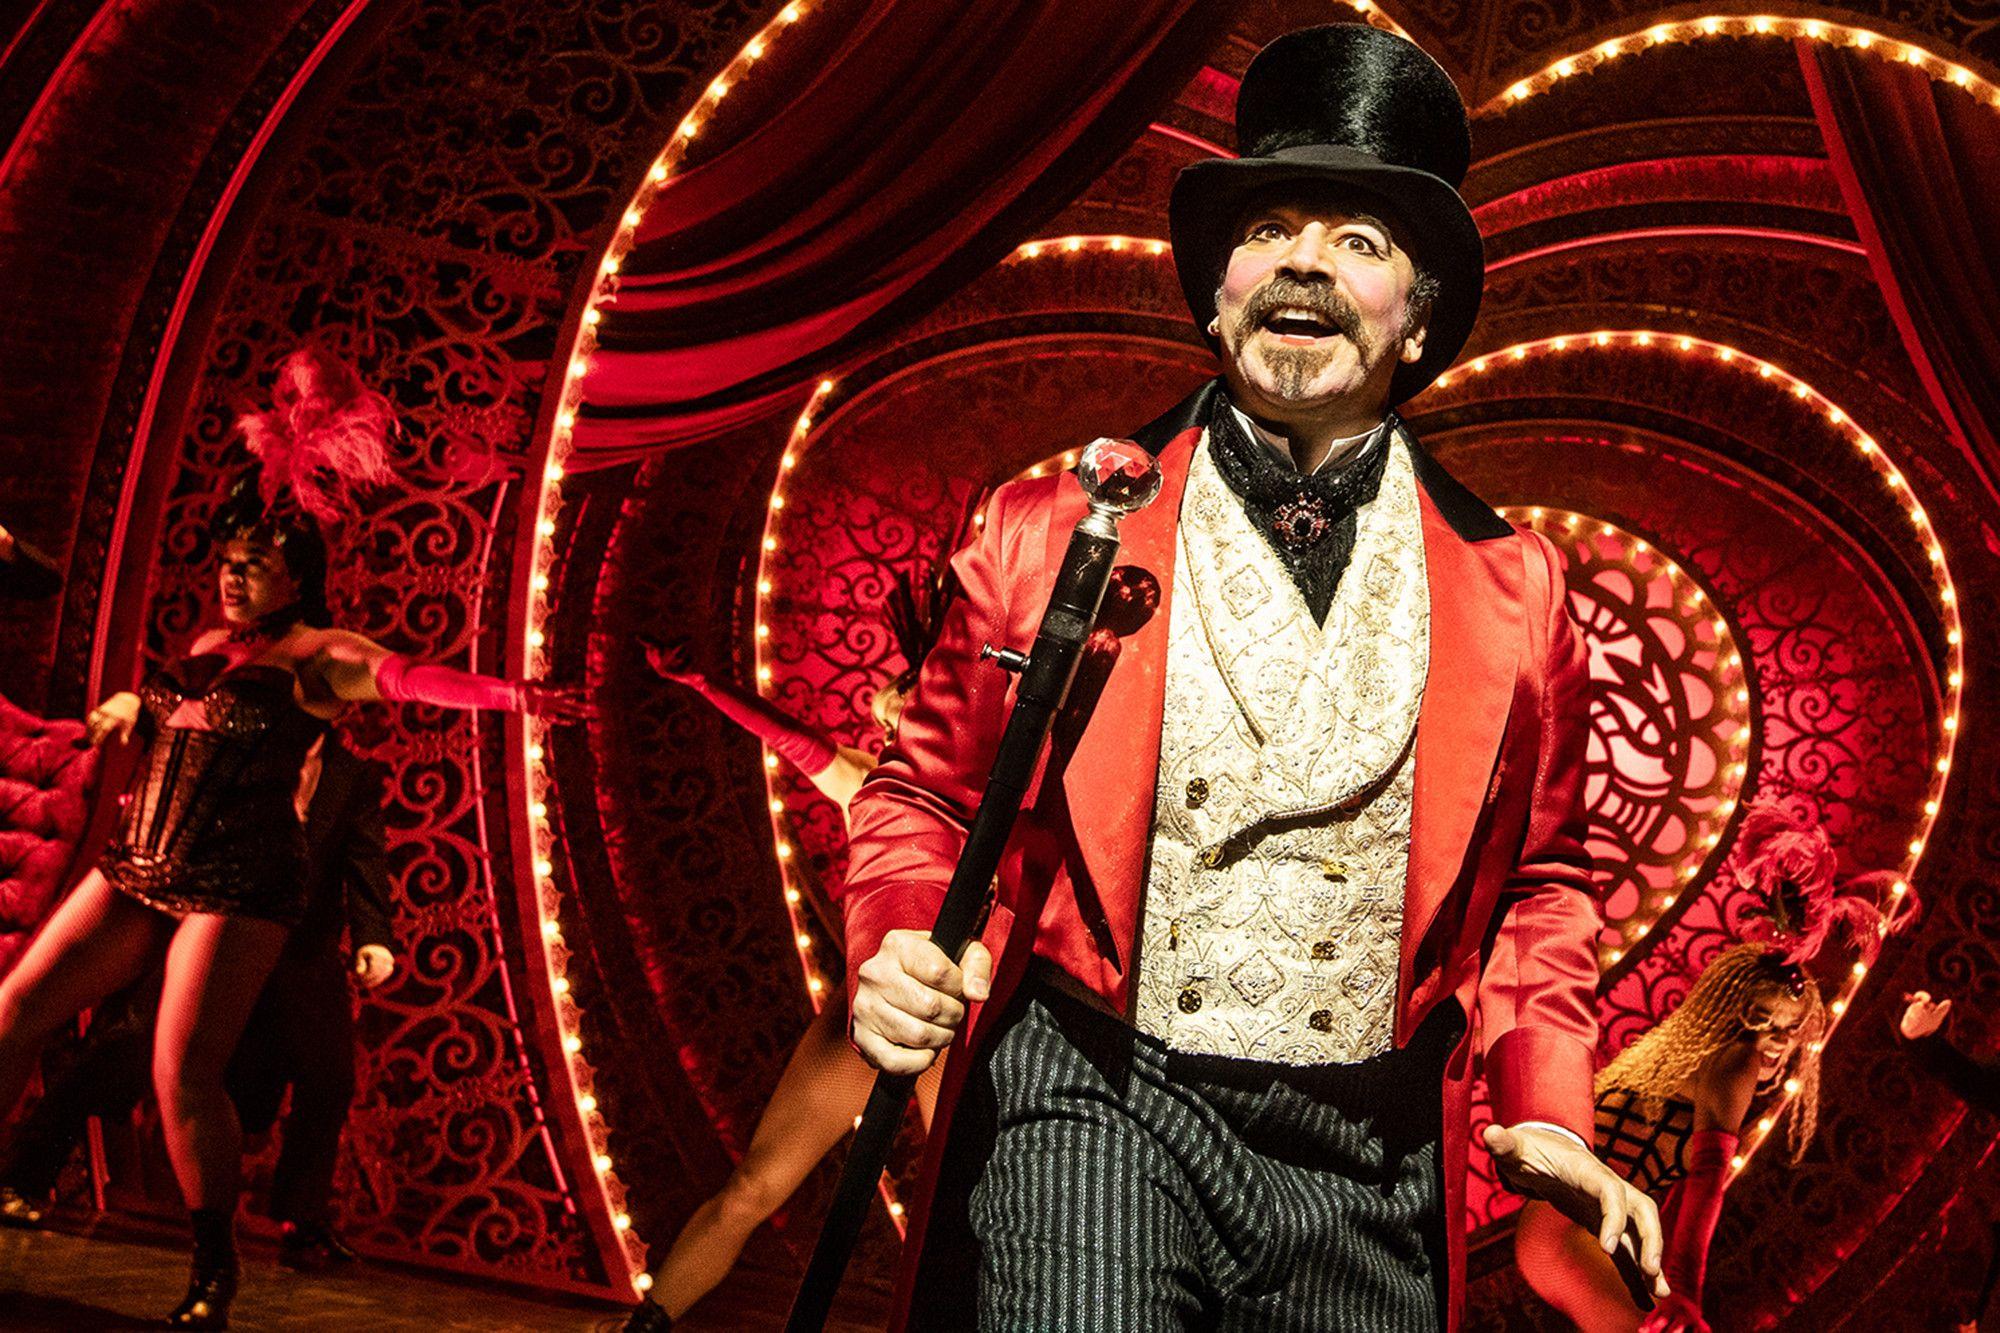 Moulin Rouge Libro Moulin Rouge El Musical Llega A Broadway Baz Luhrmann